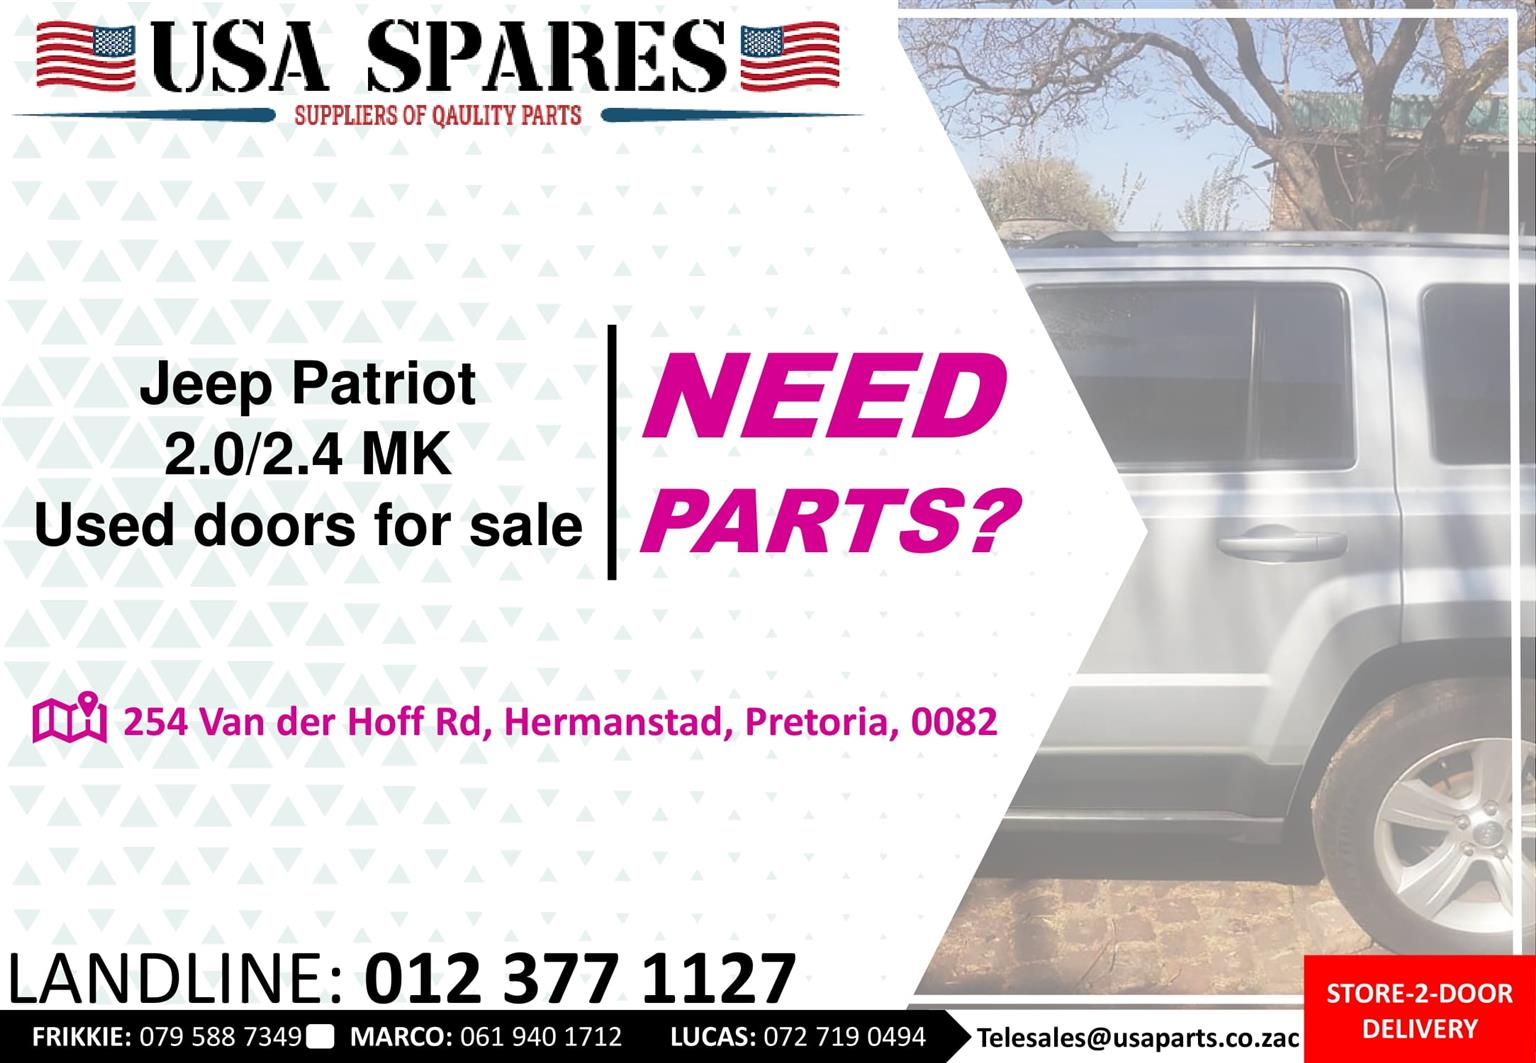 Jeep Patriot 2.0/2.4 MK 2007-17 used doors for sale